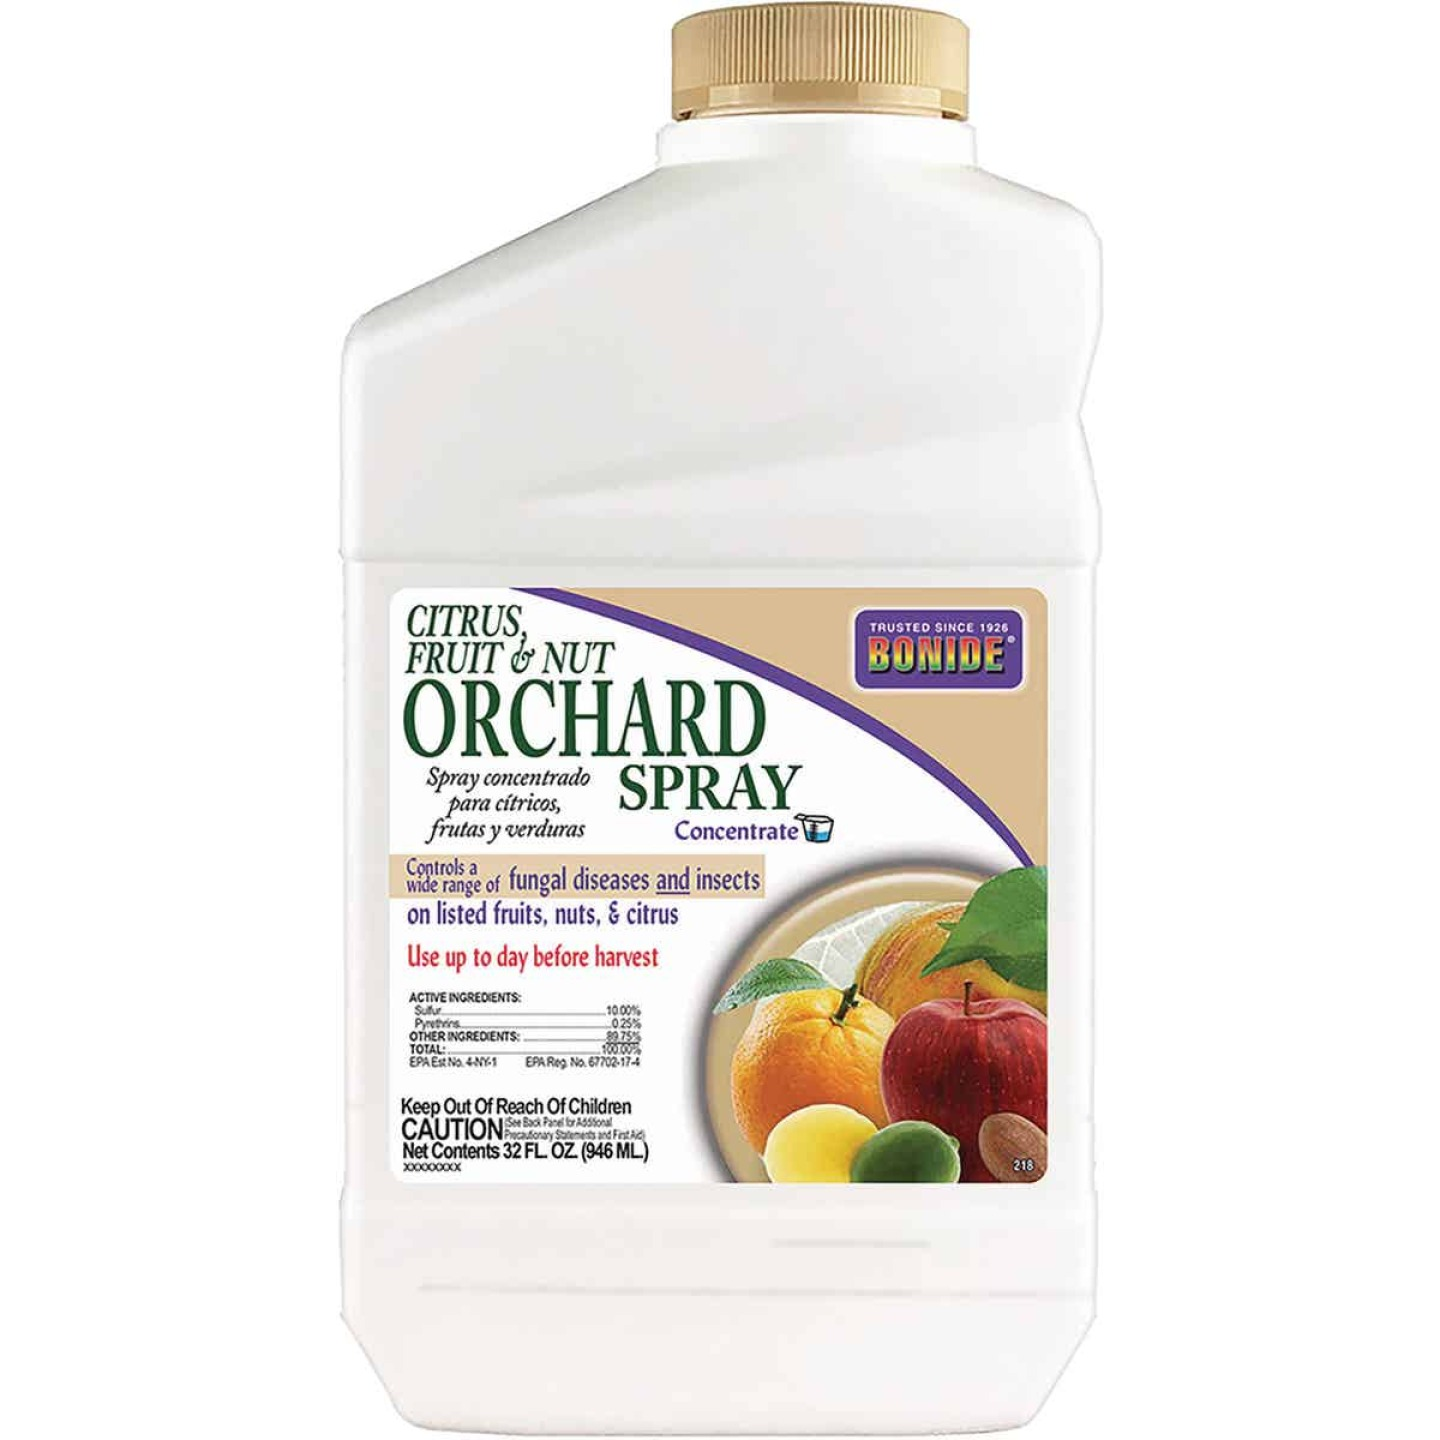 Bonide 32 Oz. Concentrate Orchard Spray Fruit Tree Insect & Disease Killer Image 1